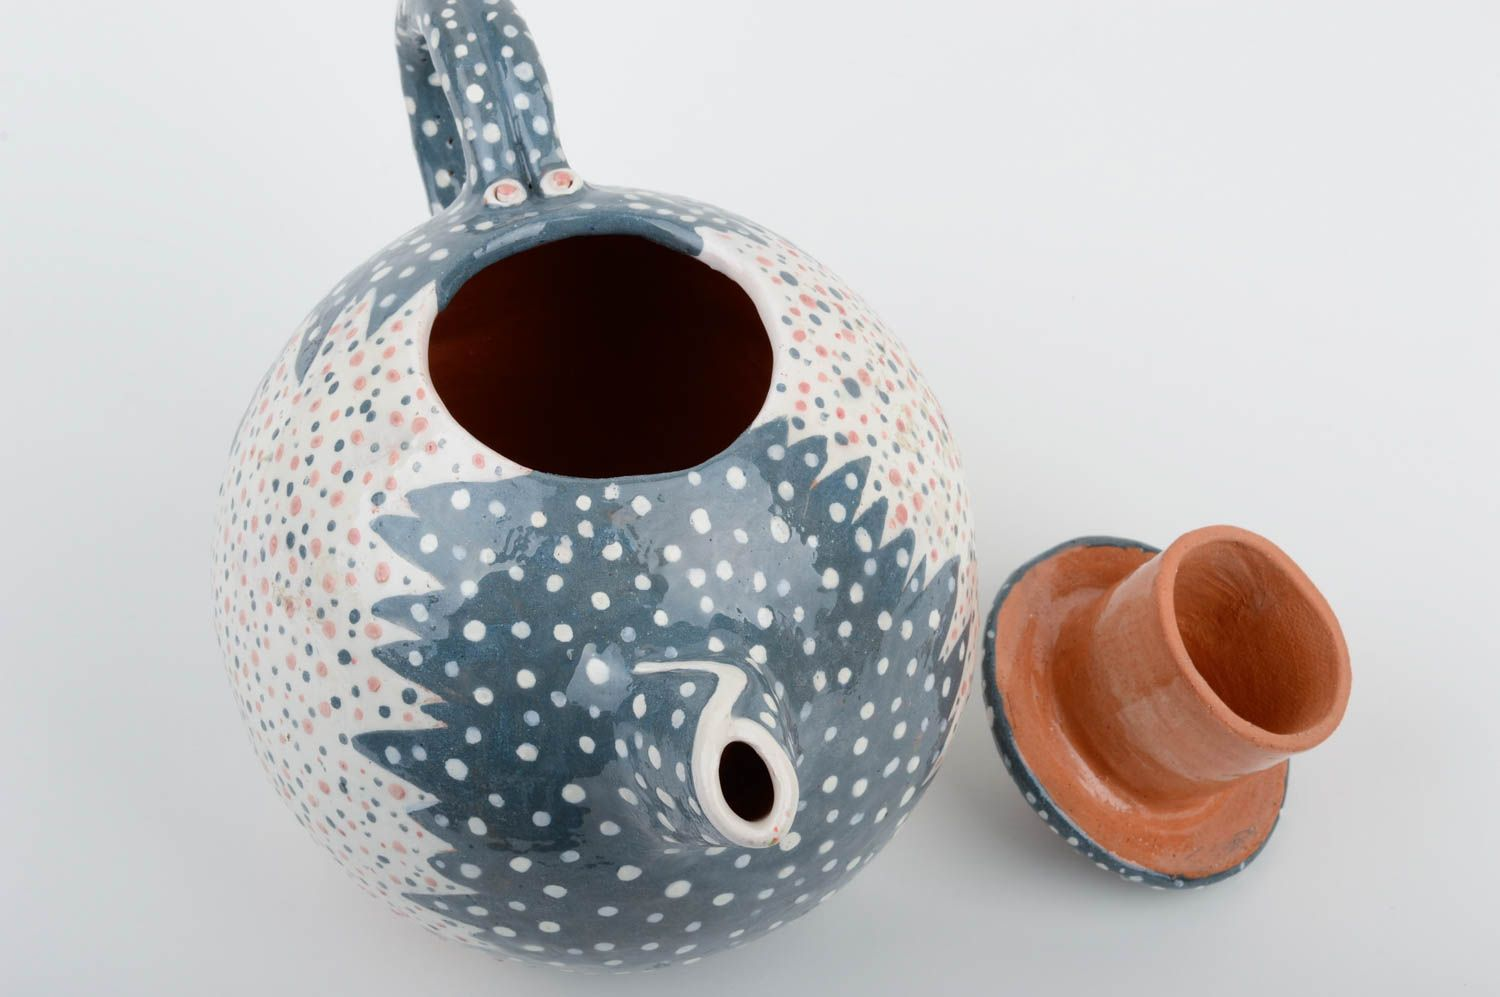 tea pots and coffee pots Handmade ceramic ware stylish clay teapot unusual kitchenware art pottery - MADEheart.com